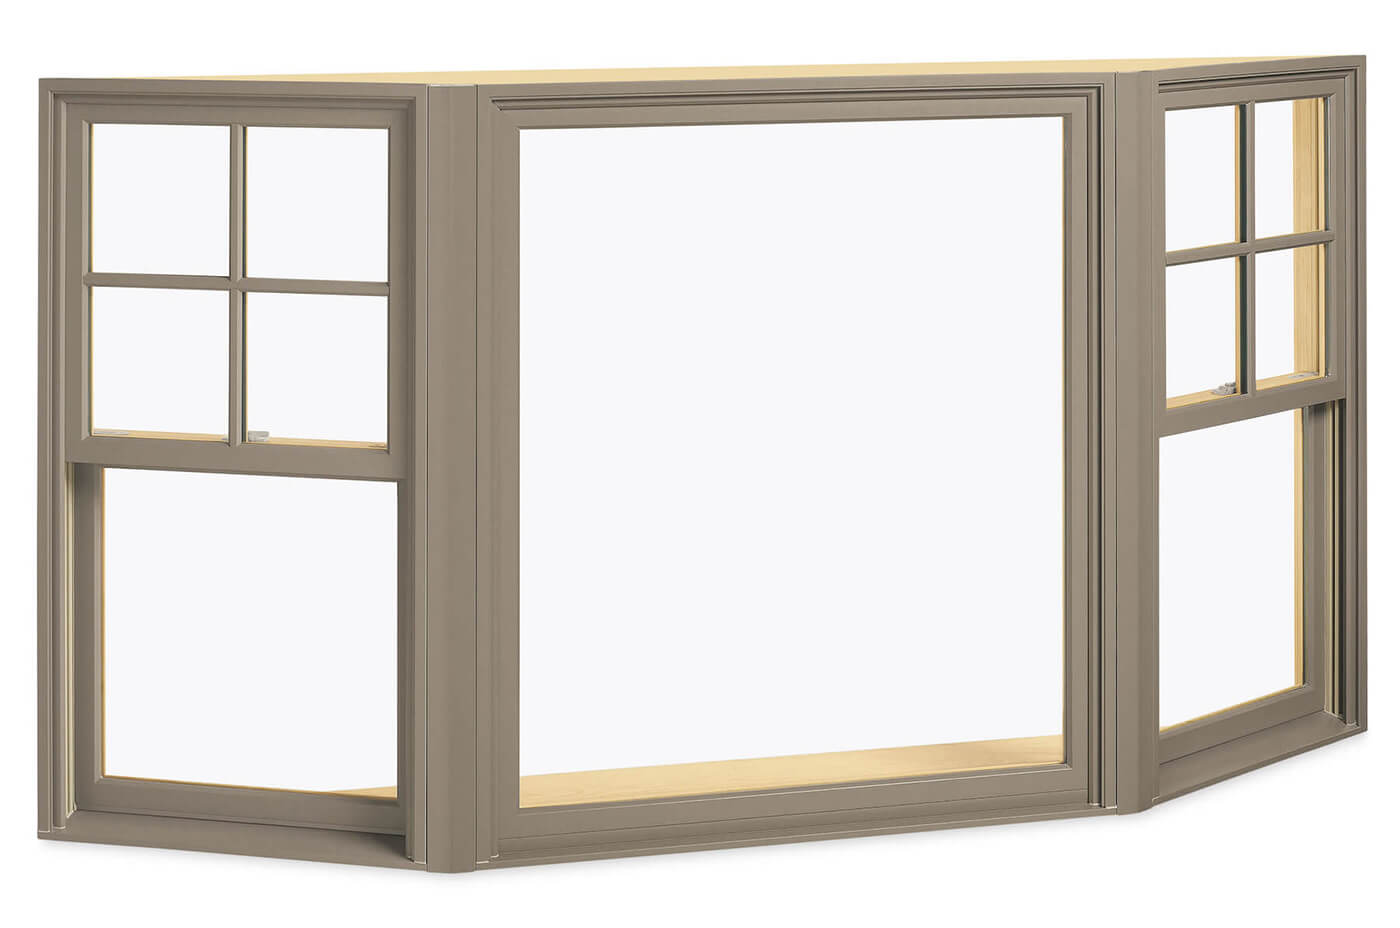 Integrity Wood Ultrex Bay Window Product Shot